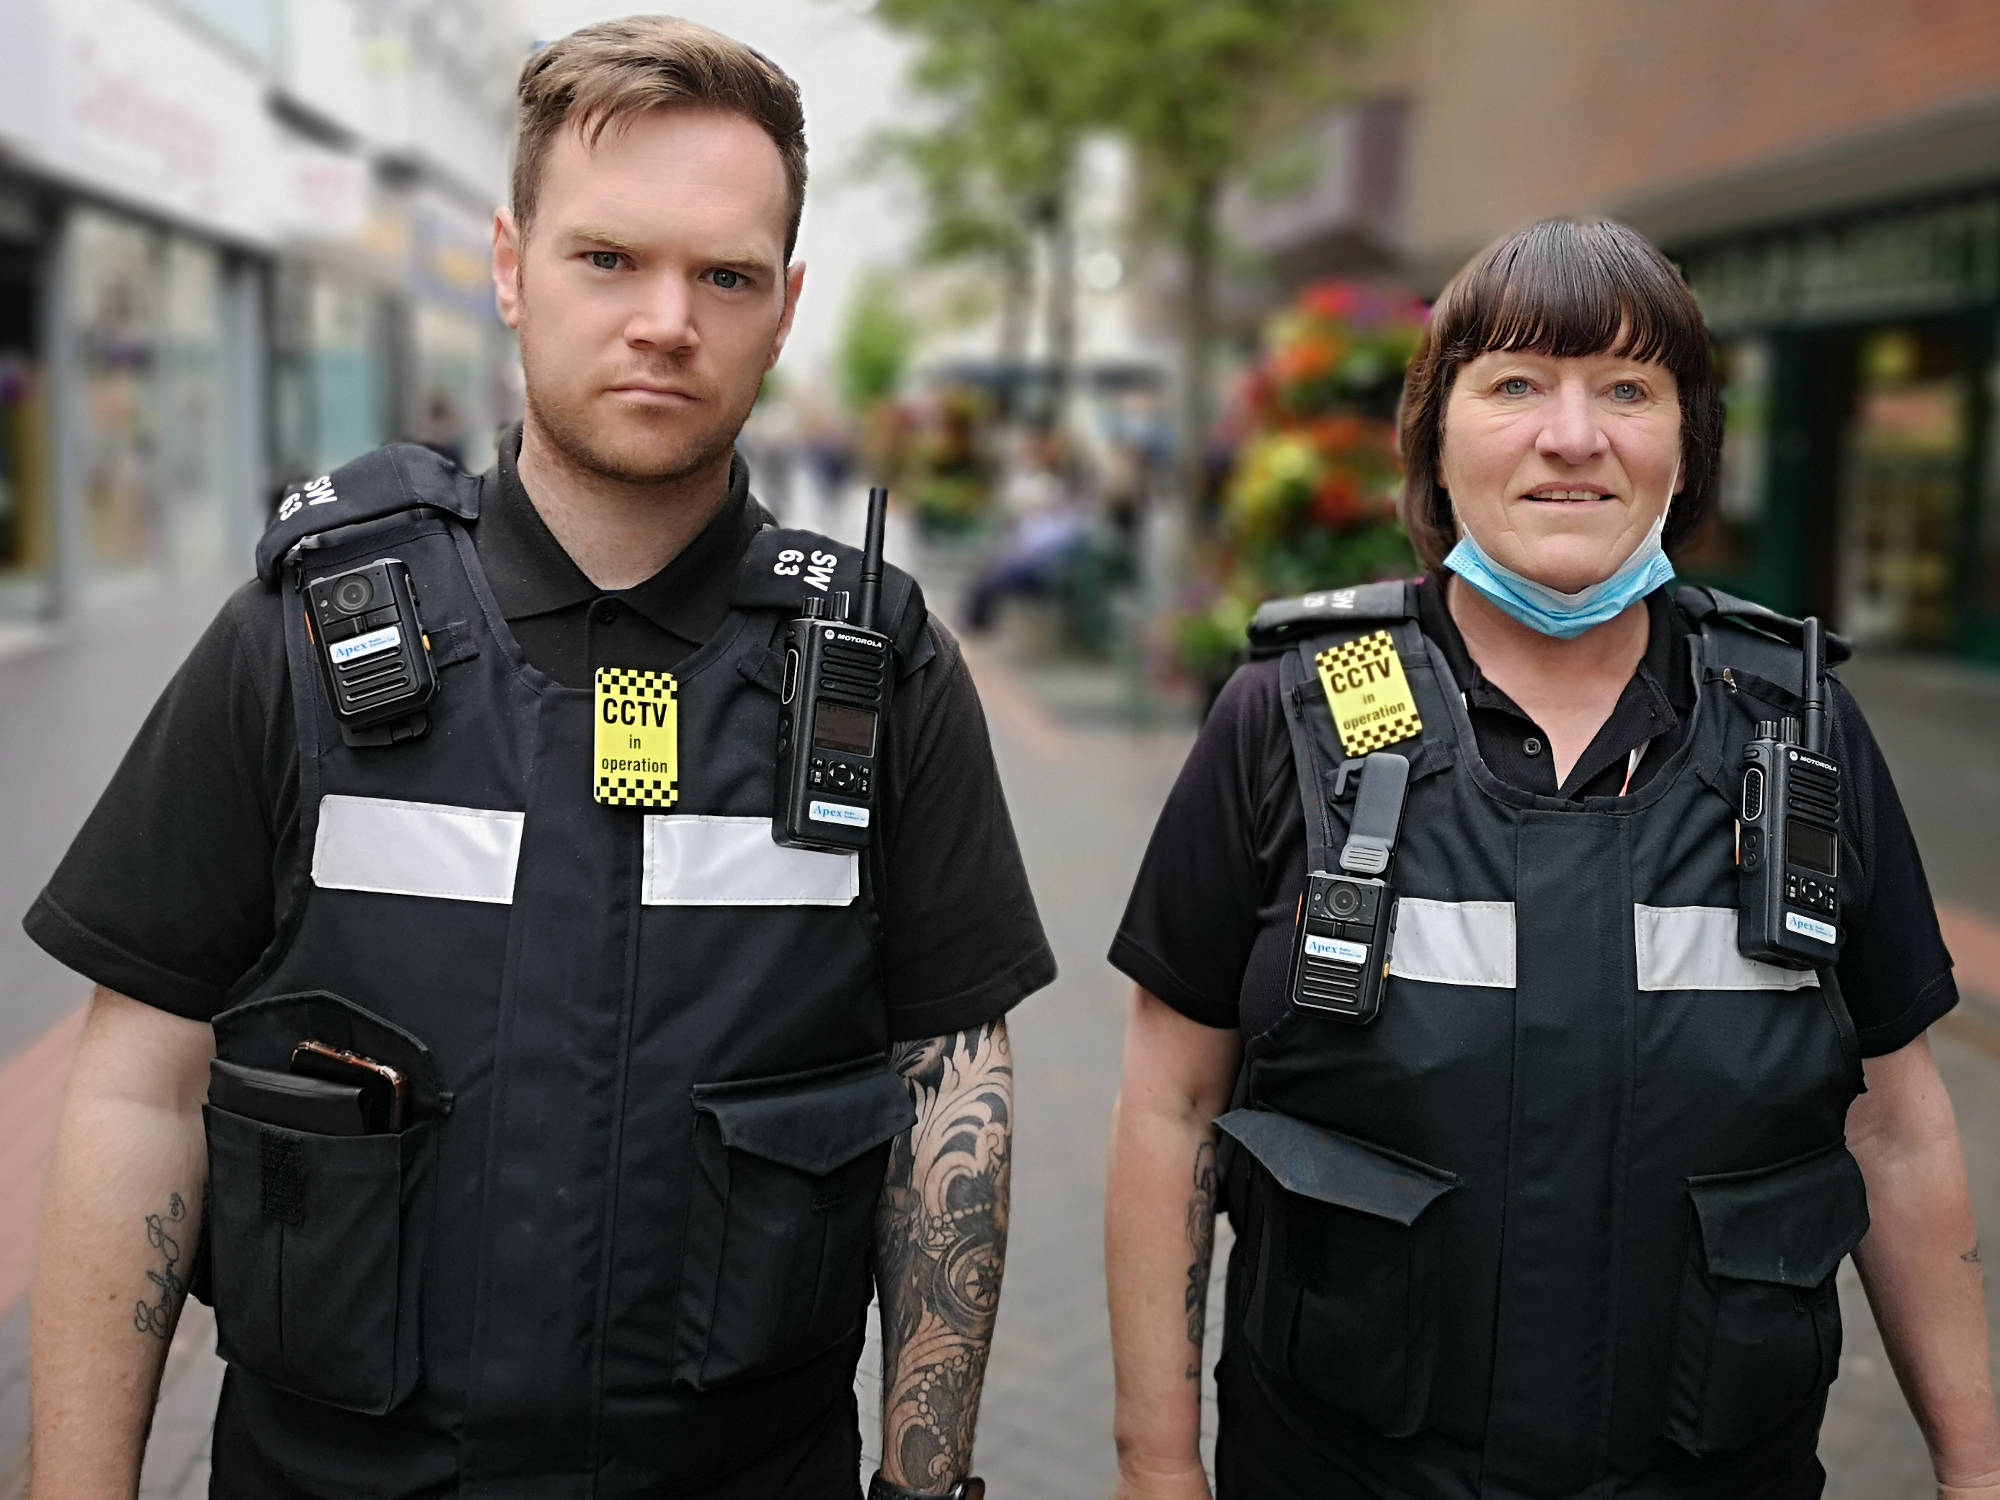 A photo of wardens Liz Tiffney and Aaron McInnes on patrol in Middlesbrough town centre